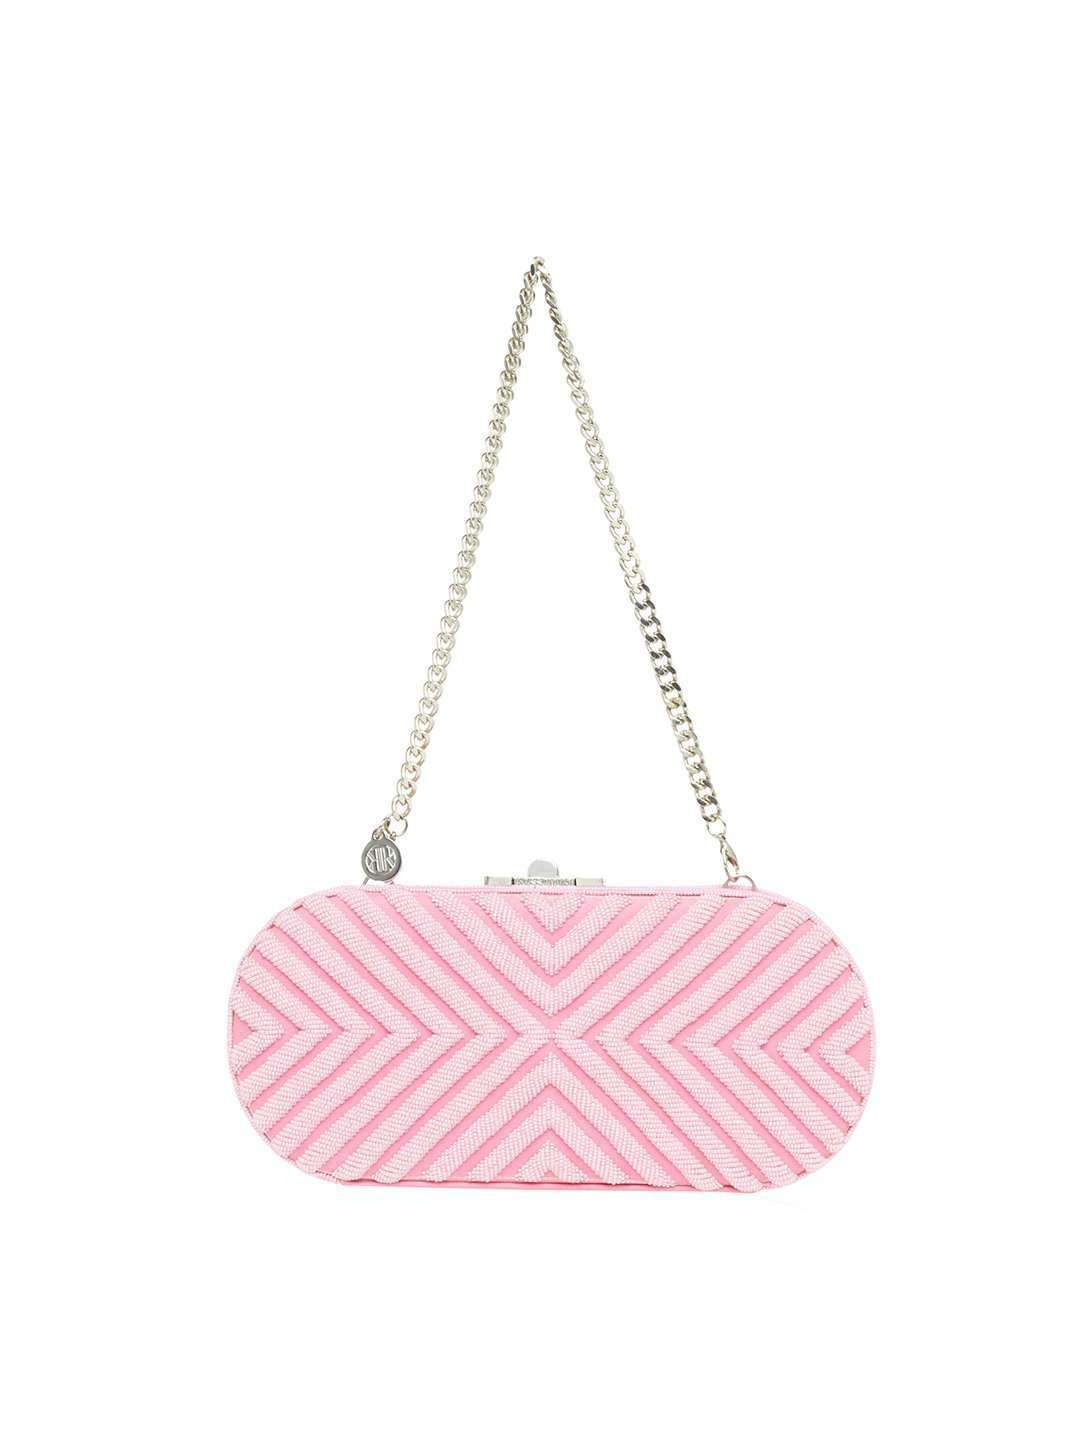 LAURIE BLUSH PINK CLUTCH BAG - ROSSOYUKI - Handbags